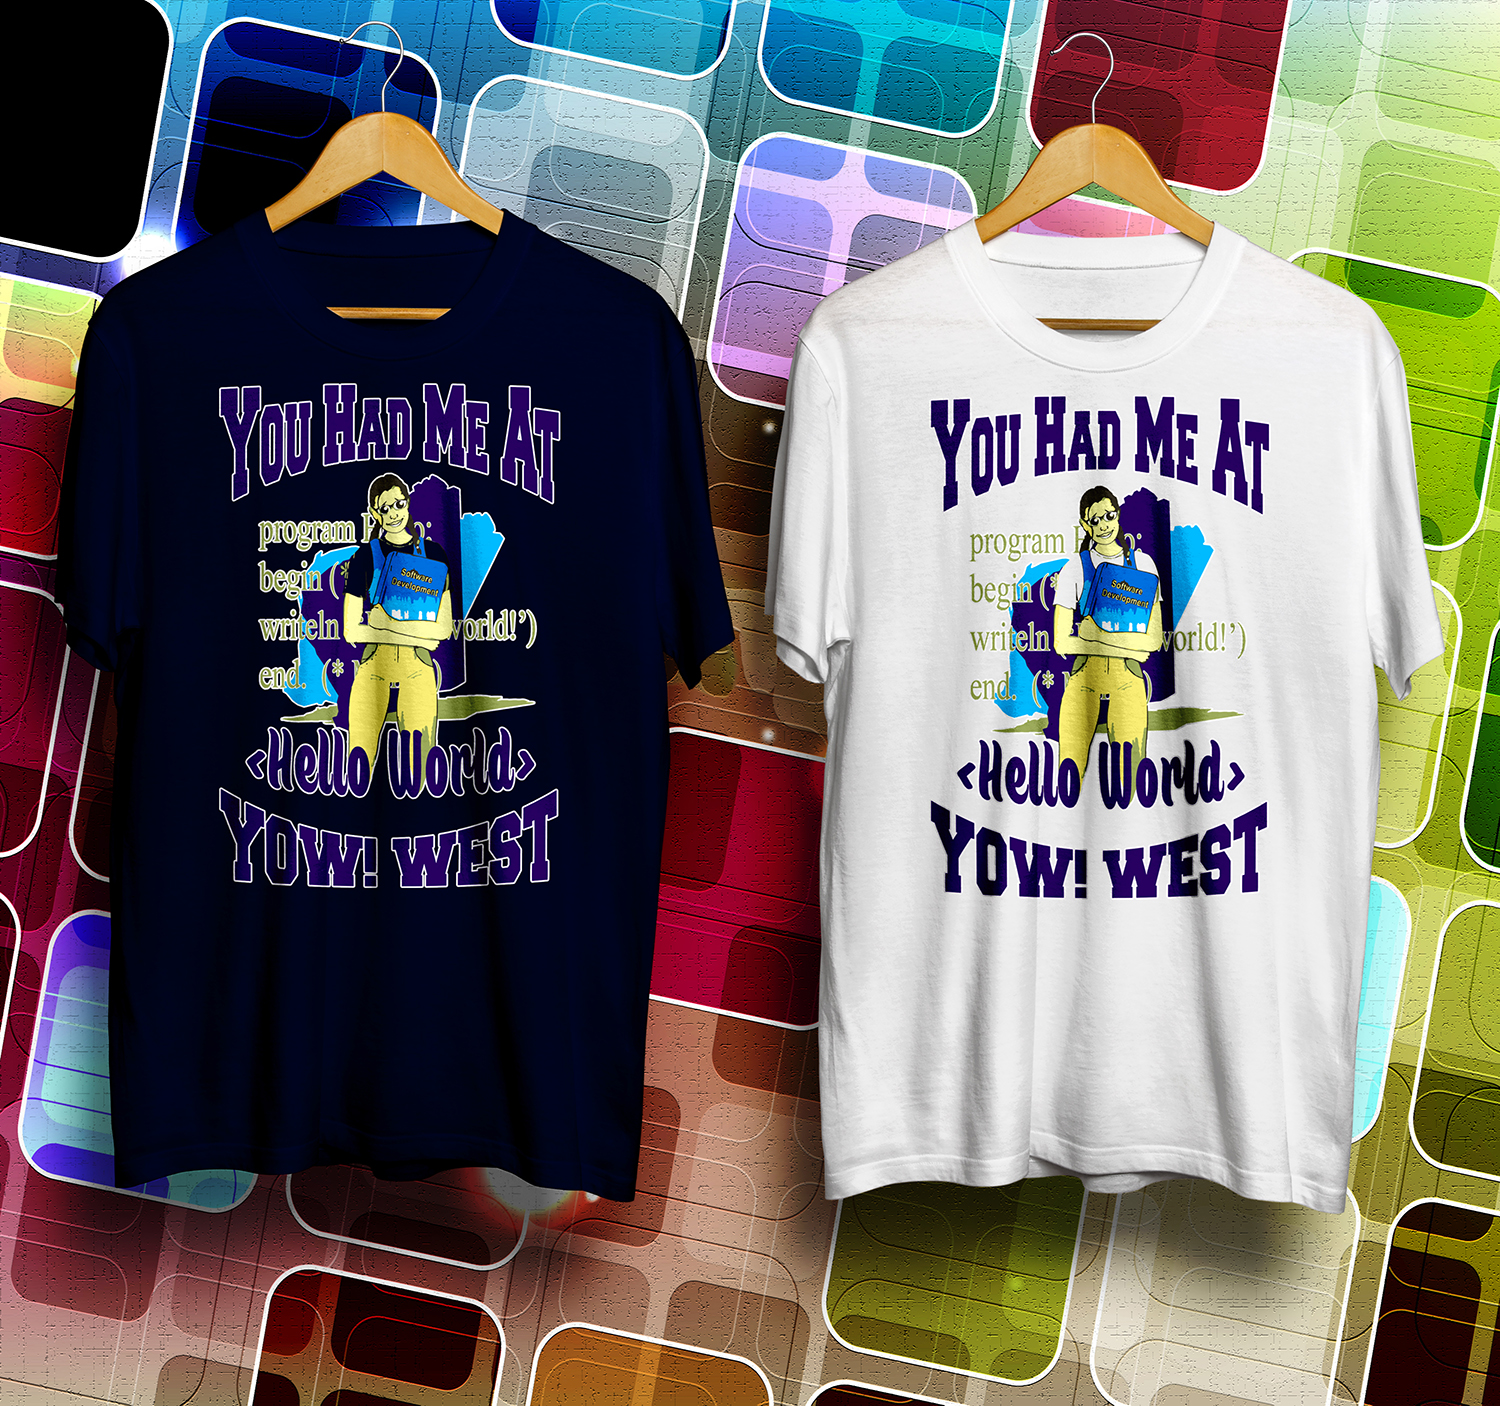 Playful Modern Software T Shirt Design For Yow Australia By